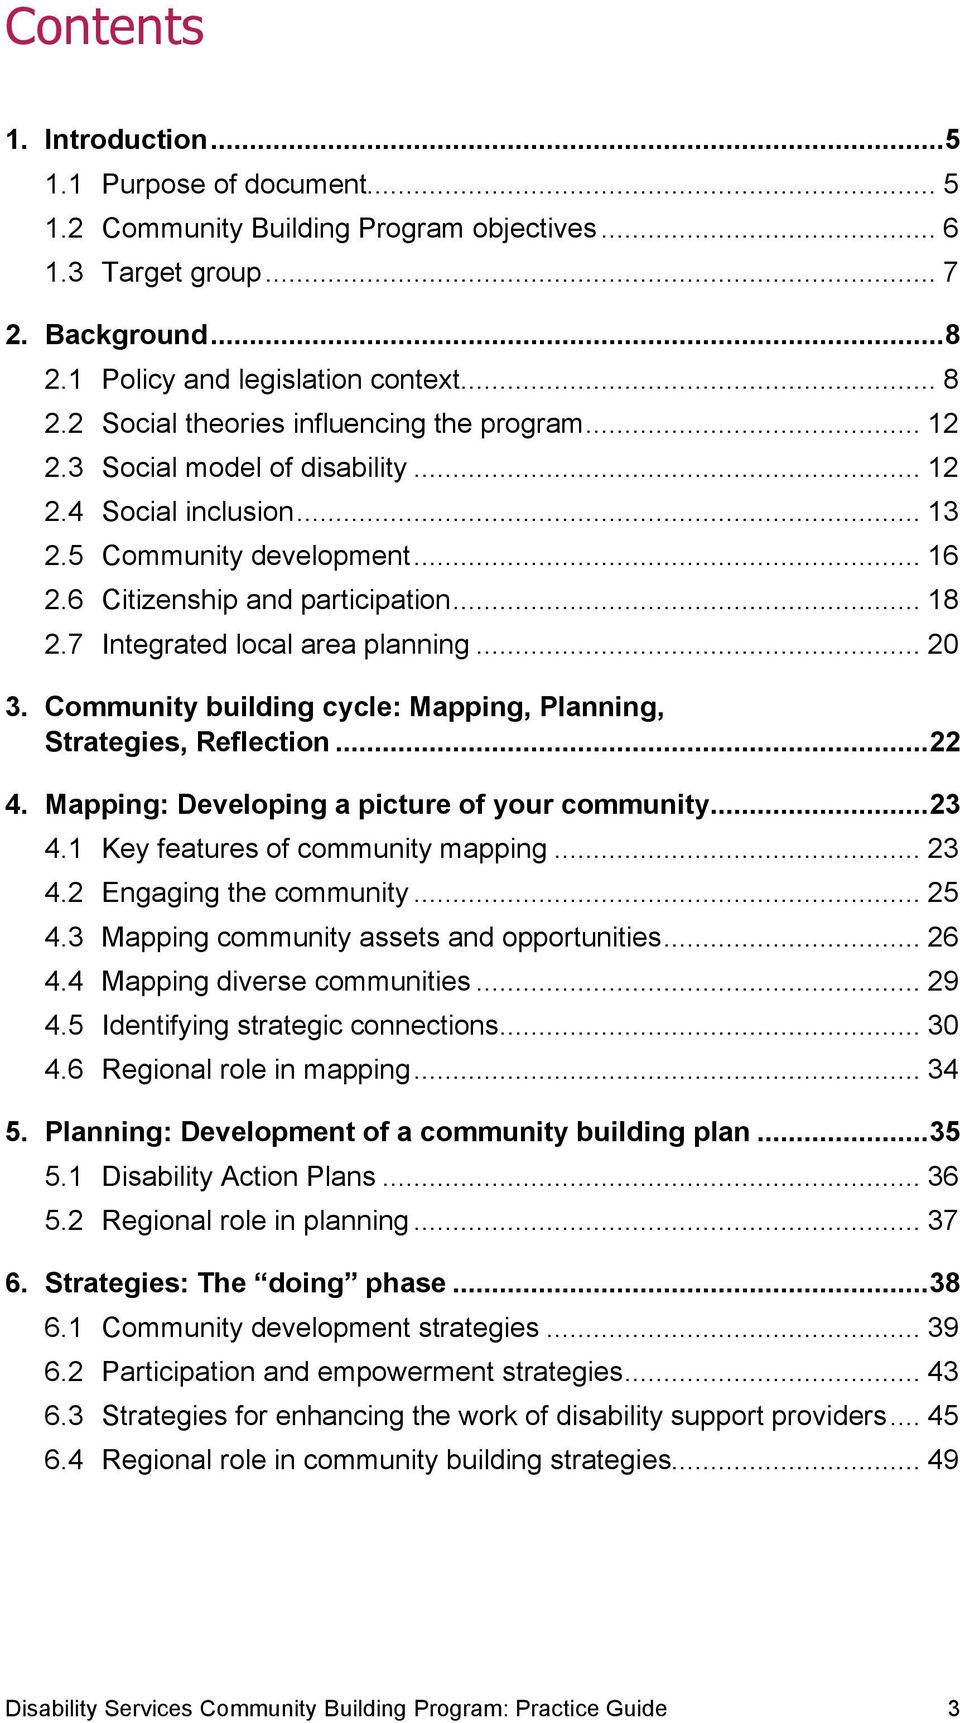 7 Integrated local area planning... 20 3. Community building cycle: Mapping, Planning, Strategies, Reflection...22 4. Mapping: Developing a picture of your community...23 4.